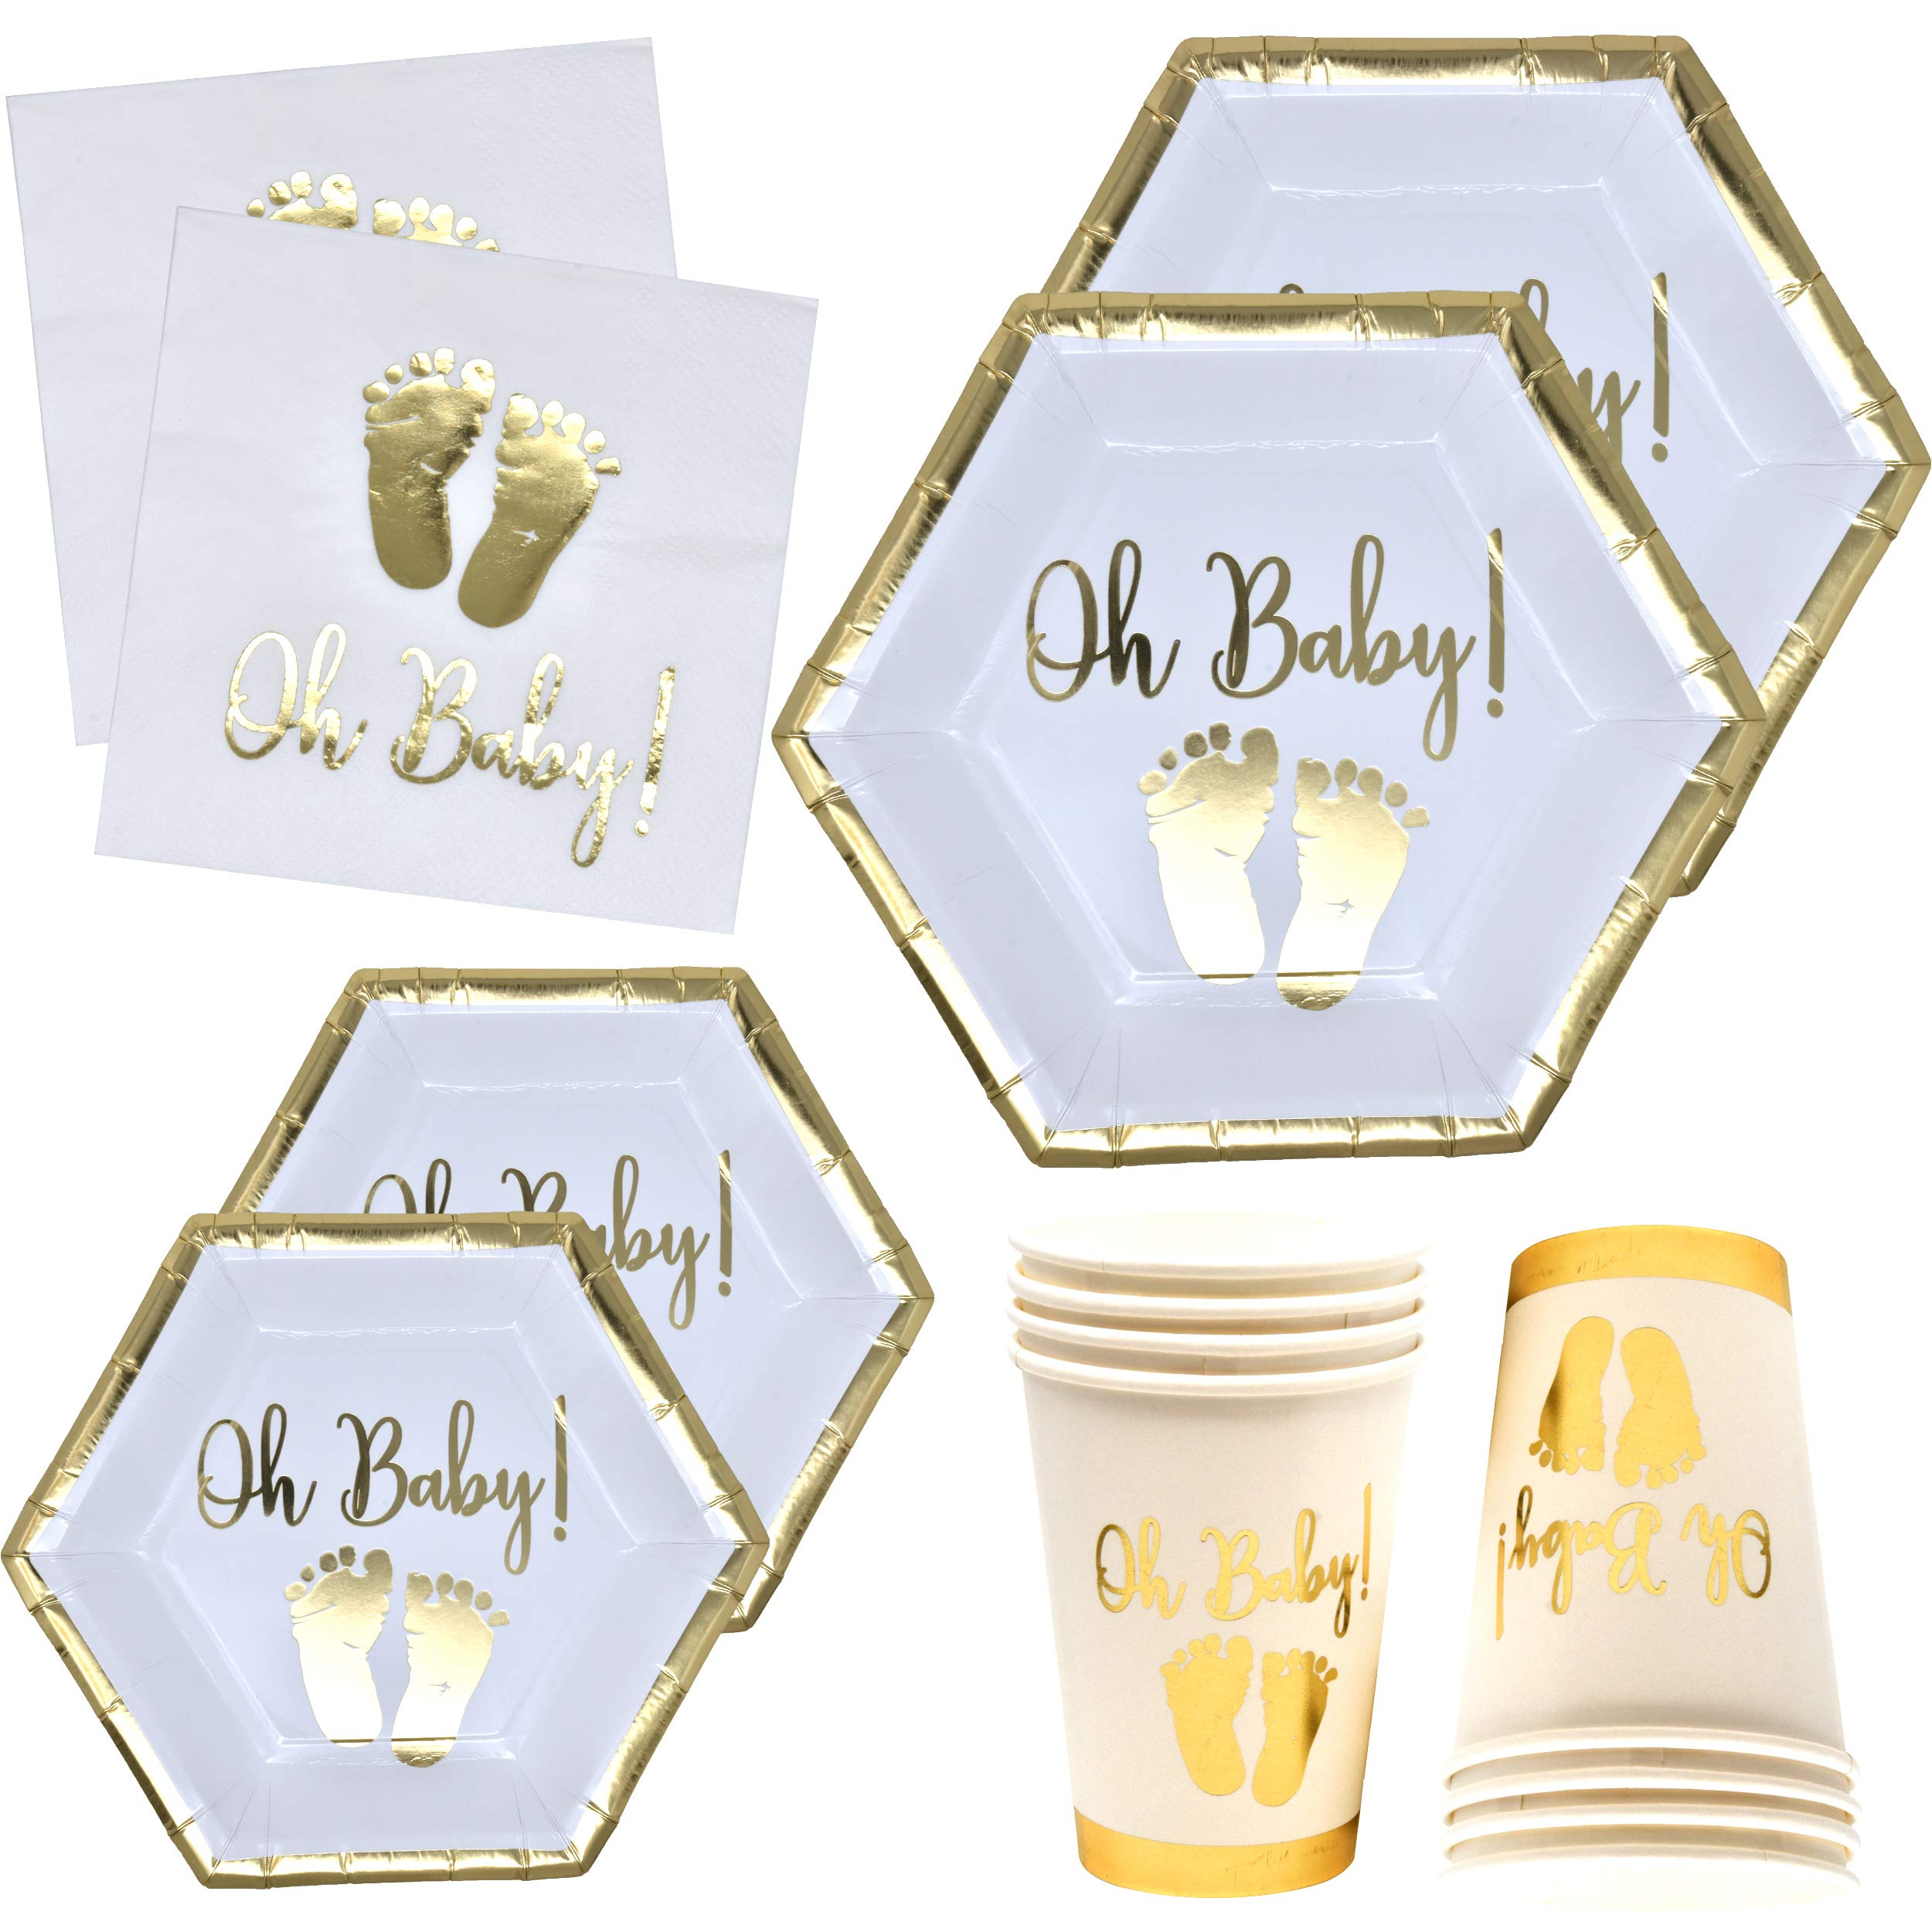 Oh Baby Shower Party Supplies Tableware Set with Gold Foil Footprint Includes 24 9'' Plates 24 7'' Plate 24 9 Oz Cups and 50 Lunch Napkins Disposable Paper Goods for Boy Girl Neutral Gender Reveal Decor by Gift Boutique